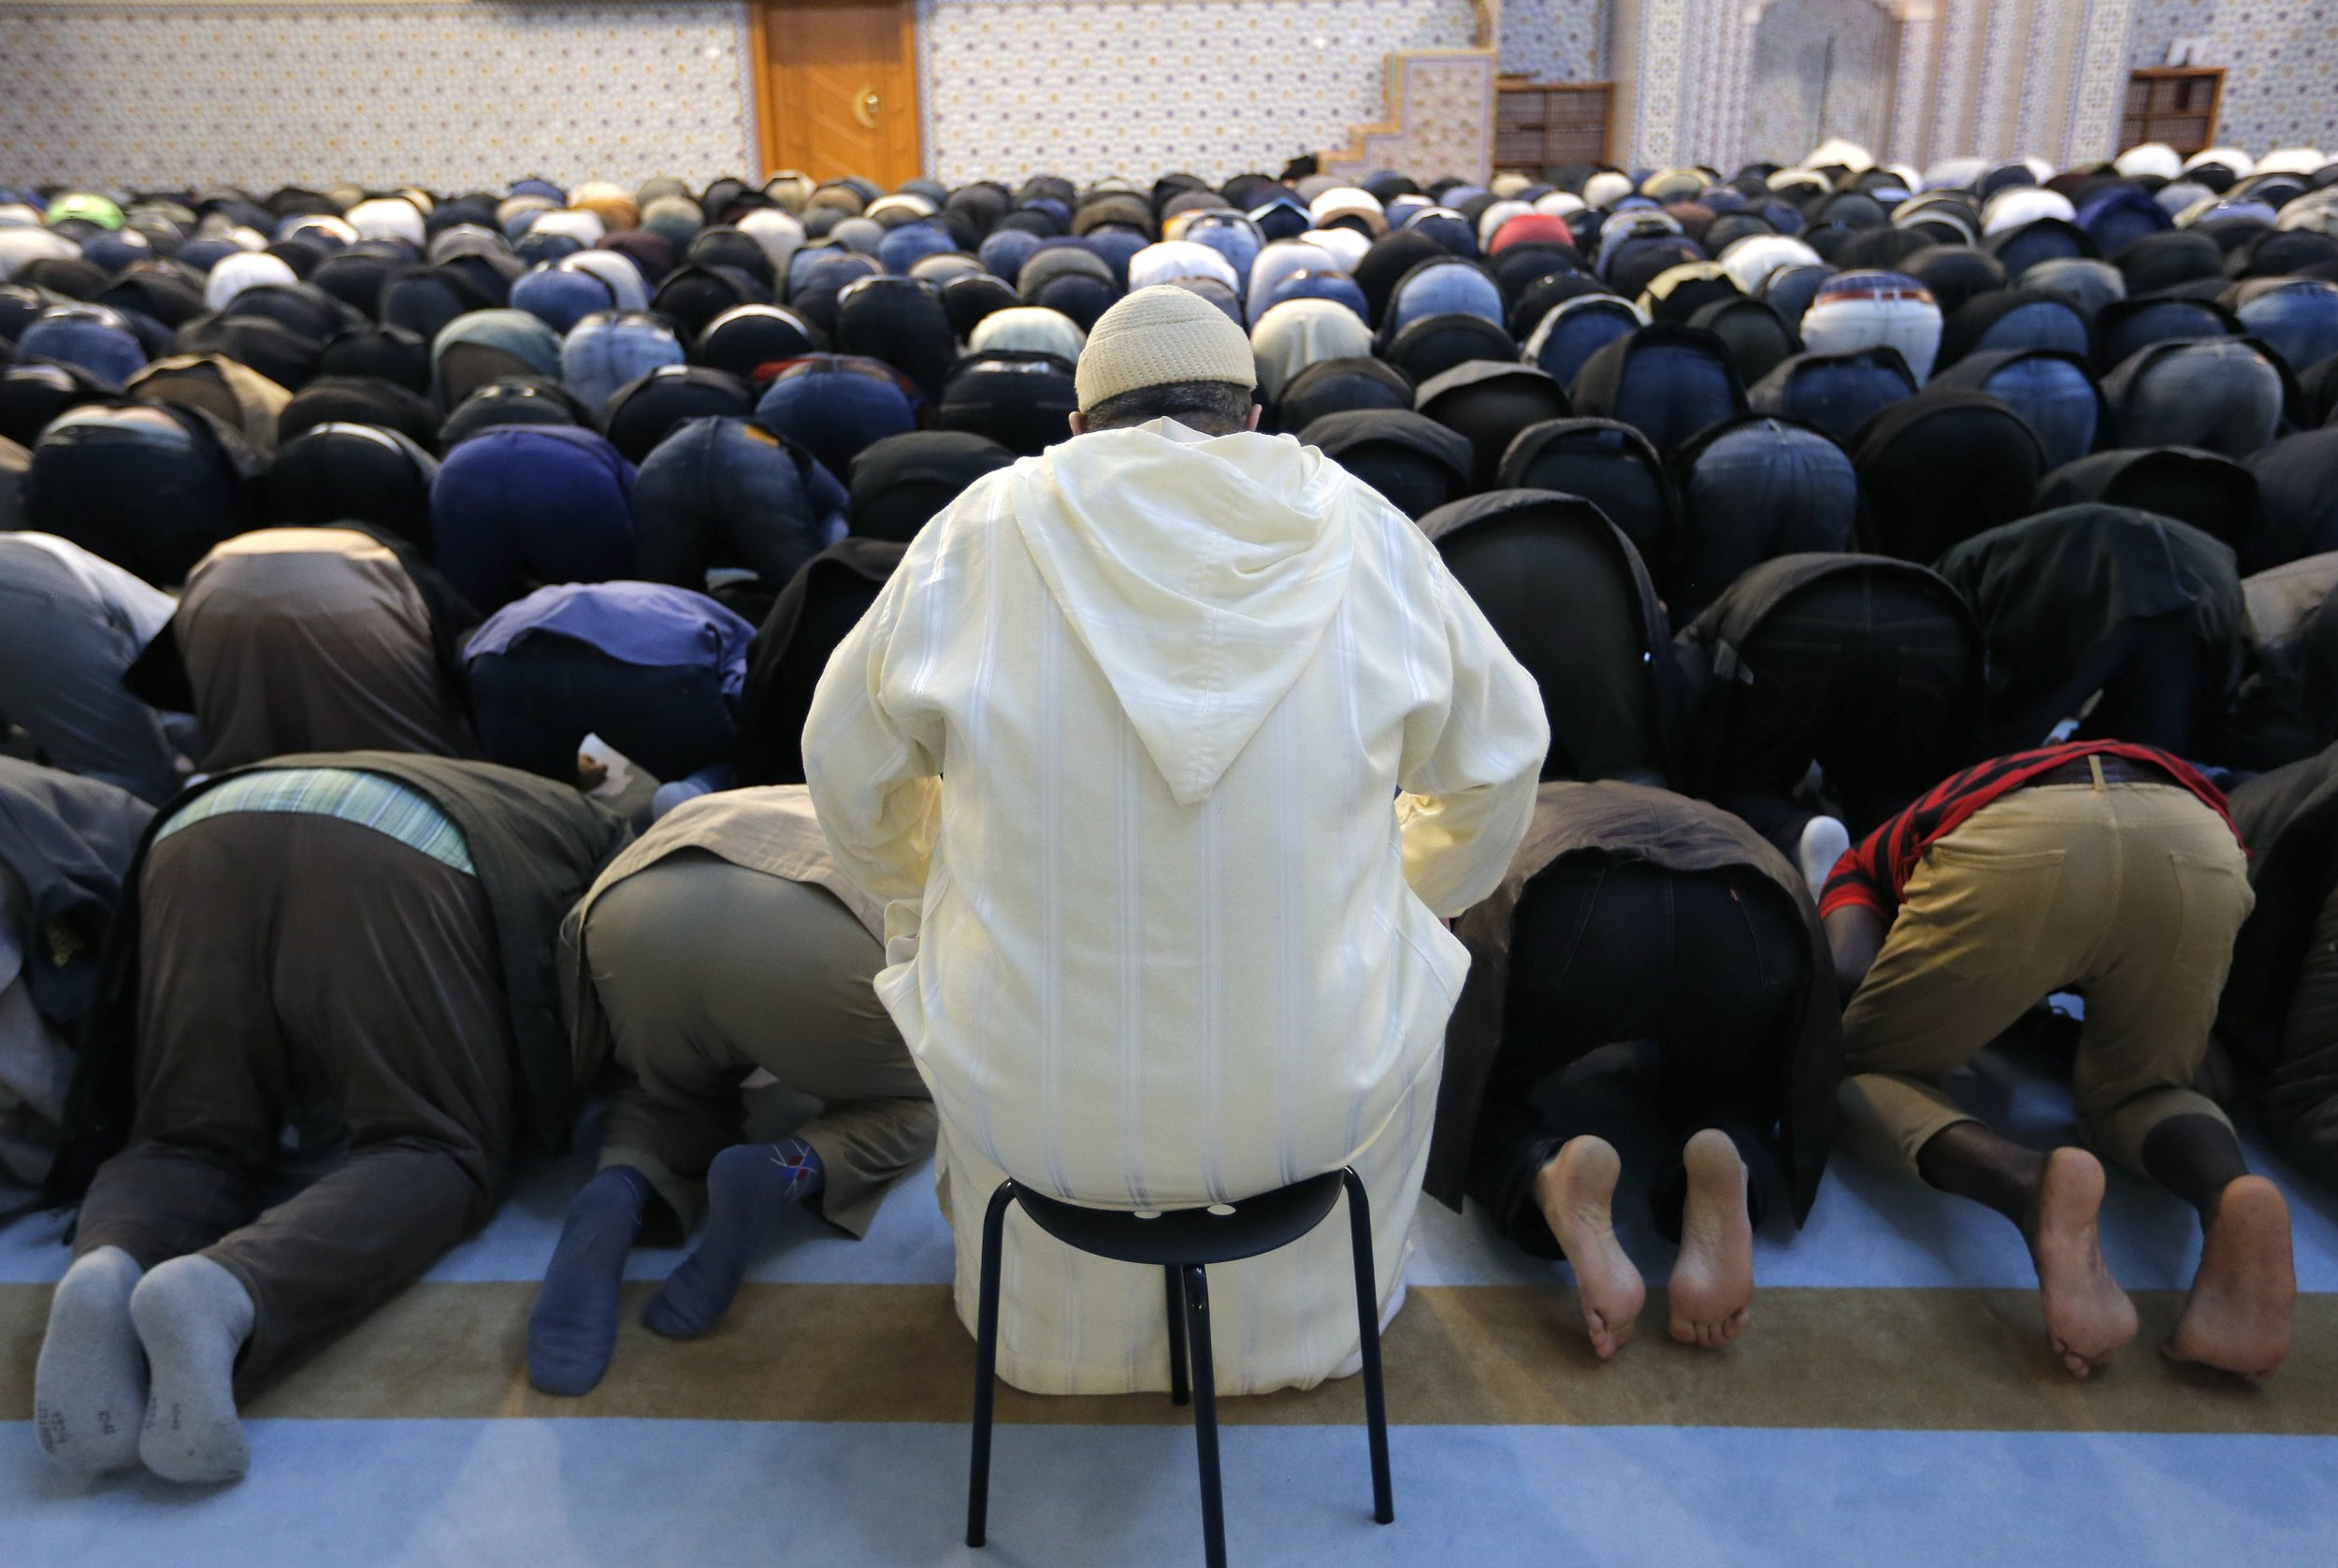 French Muslim Body to Give Imams Licenses to Preach